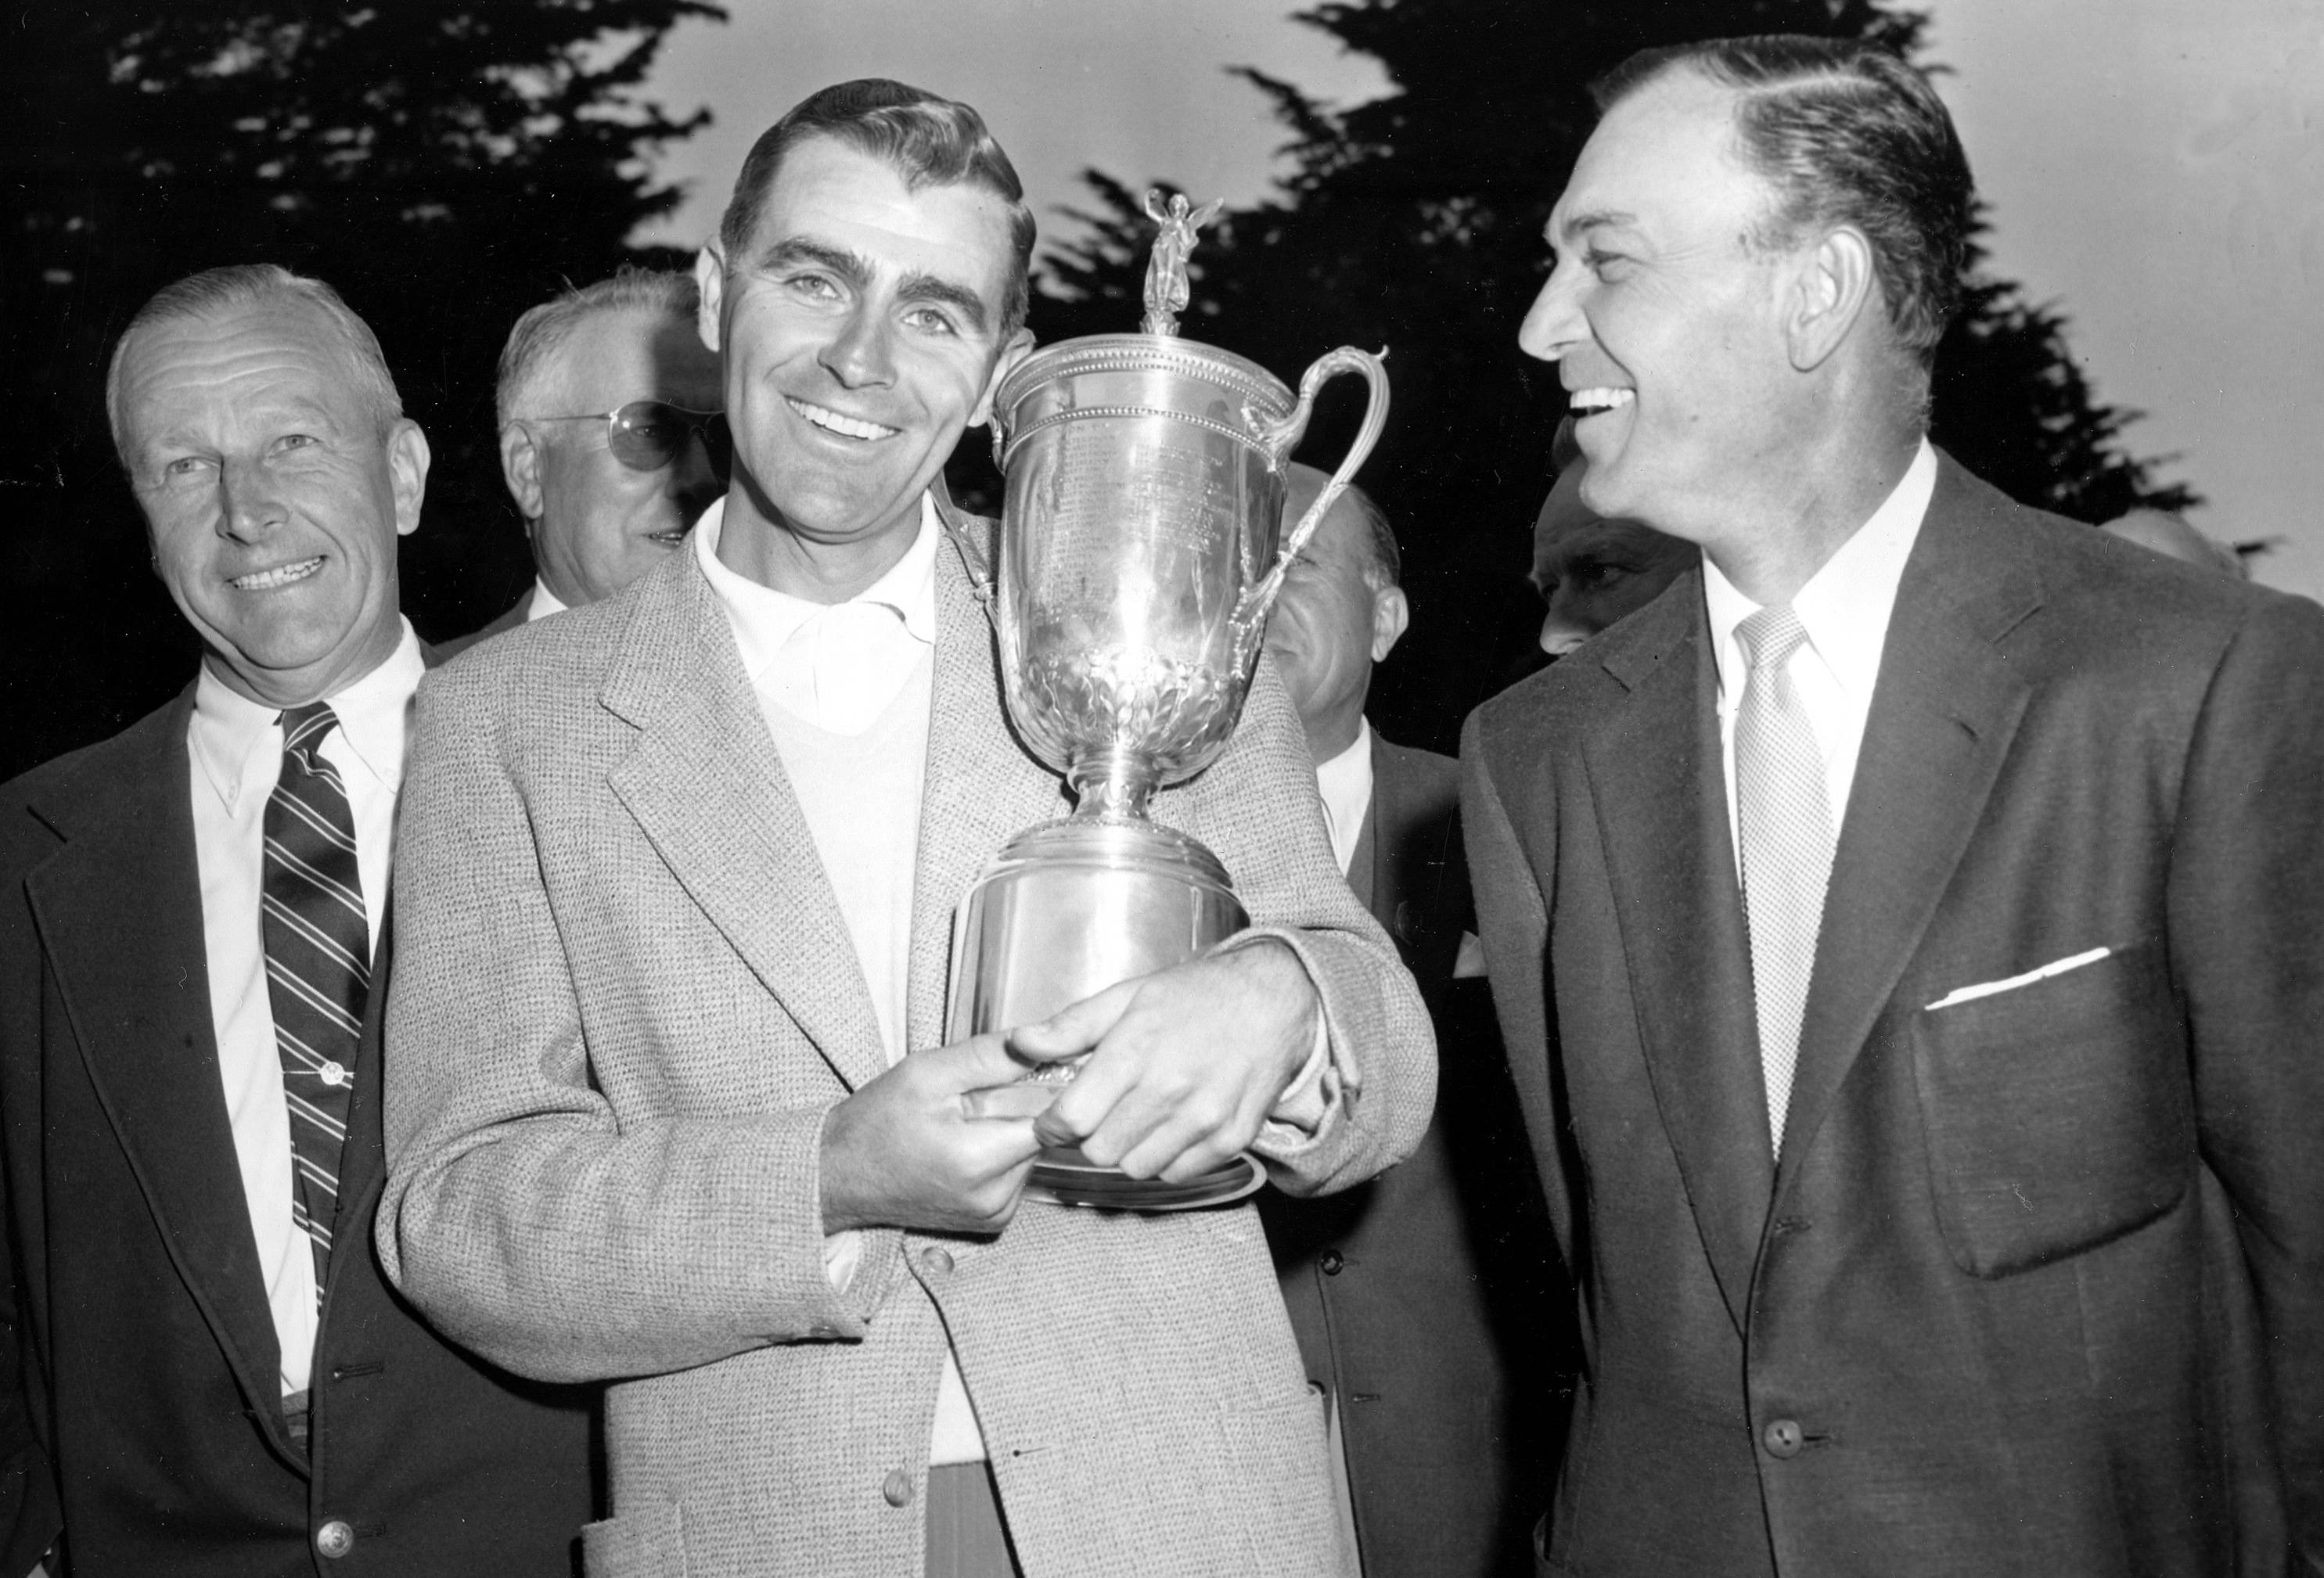 Jack Fleck, of Davenport, Iowa, poses with his championship trophy after beating Ben Hogan, right, by three strokes in an 18-hole playoff in the U.S. Open golf tournament at the Olympic Club, Lake Course, in San Francisco.